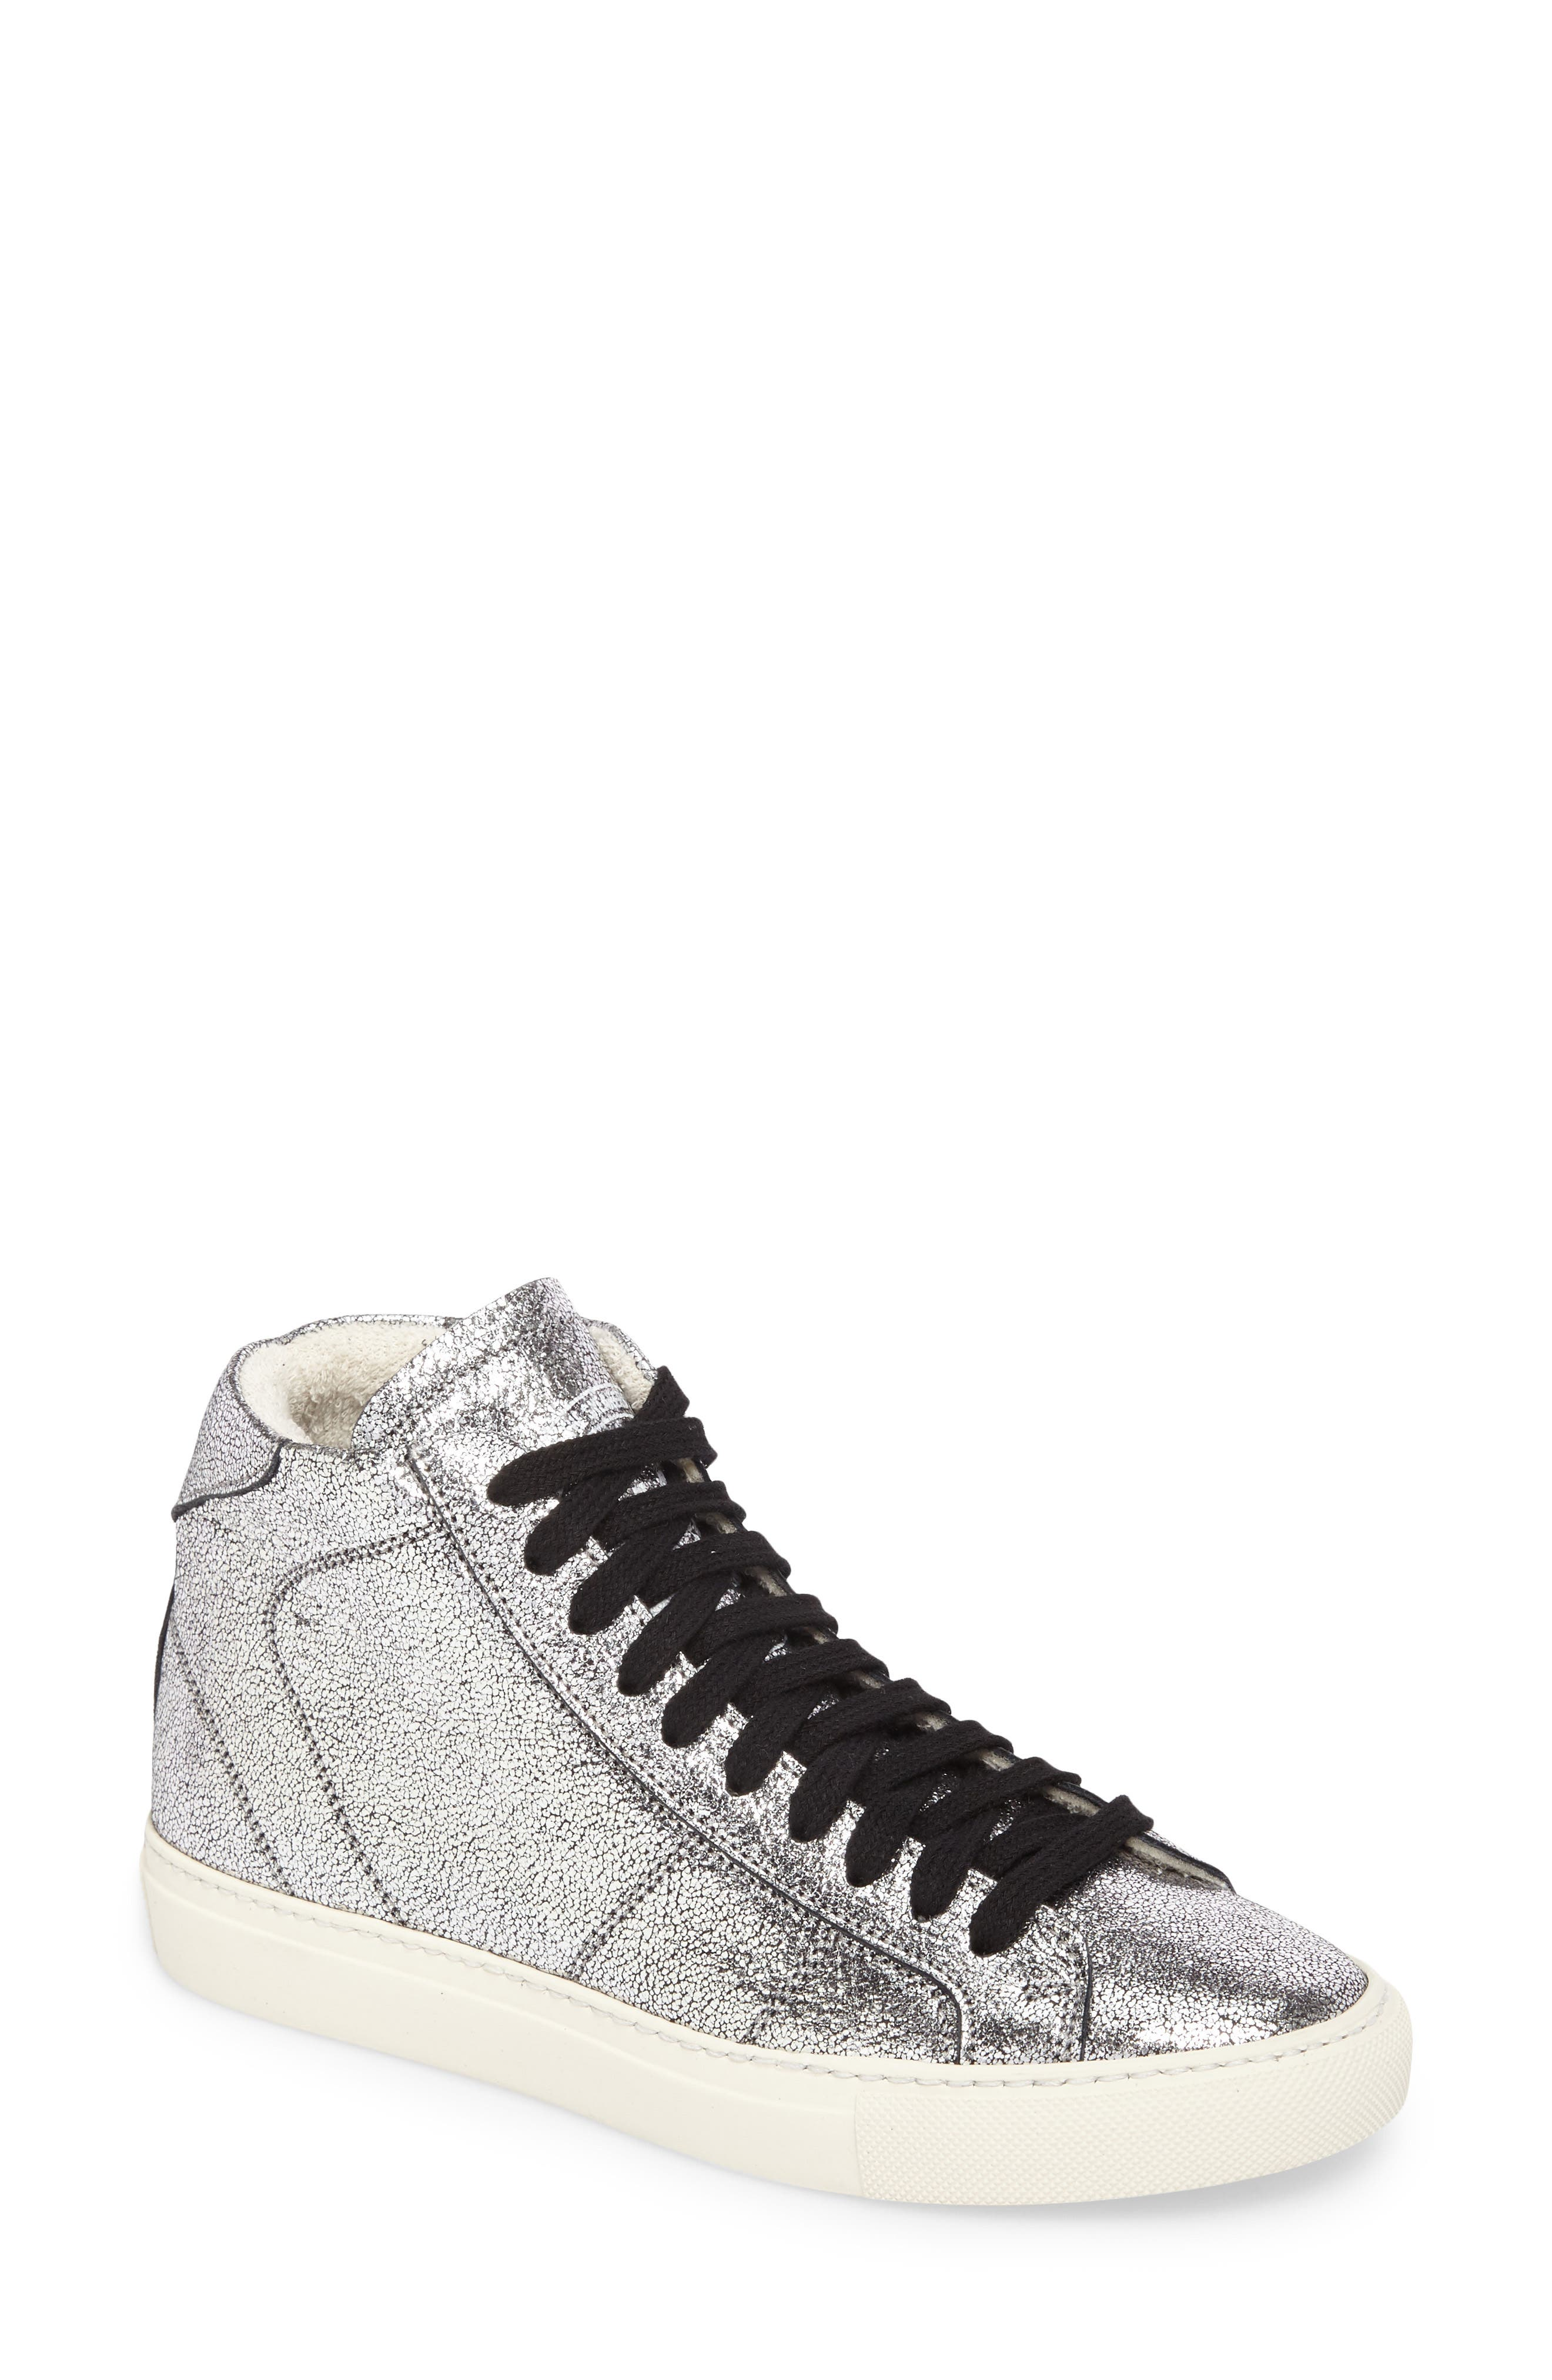 Star 2.0 Sneaker,                             Main thumbnail 1, color,                             SILVER LEATHER